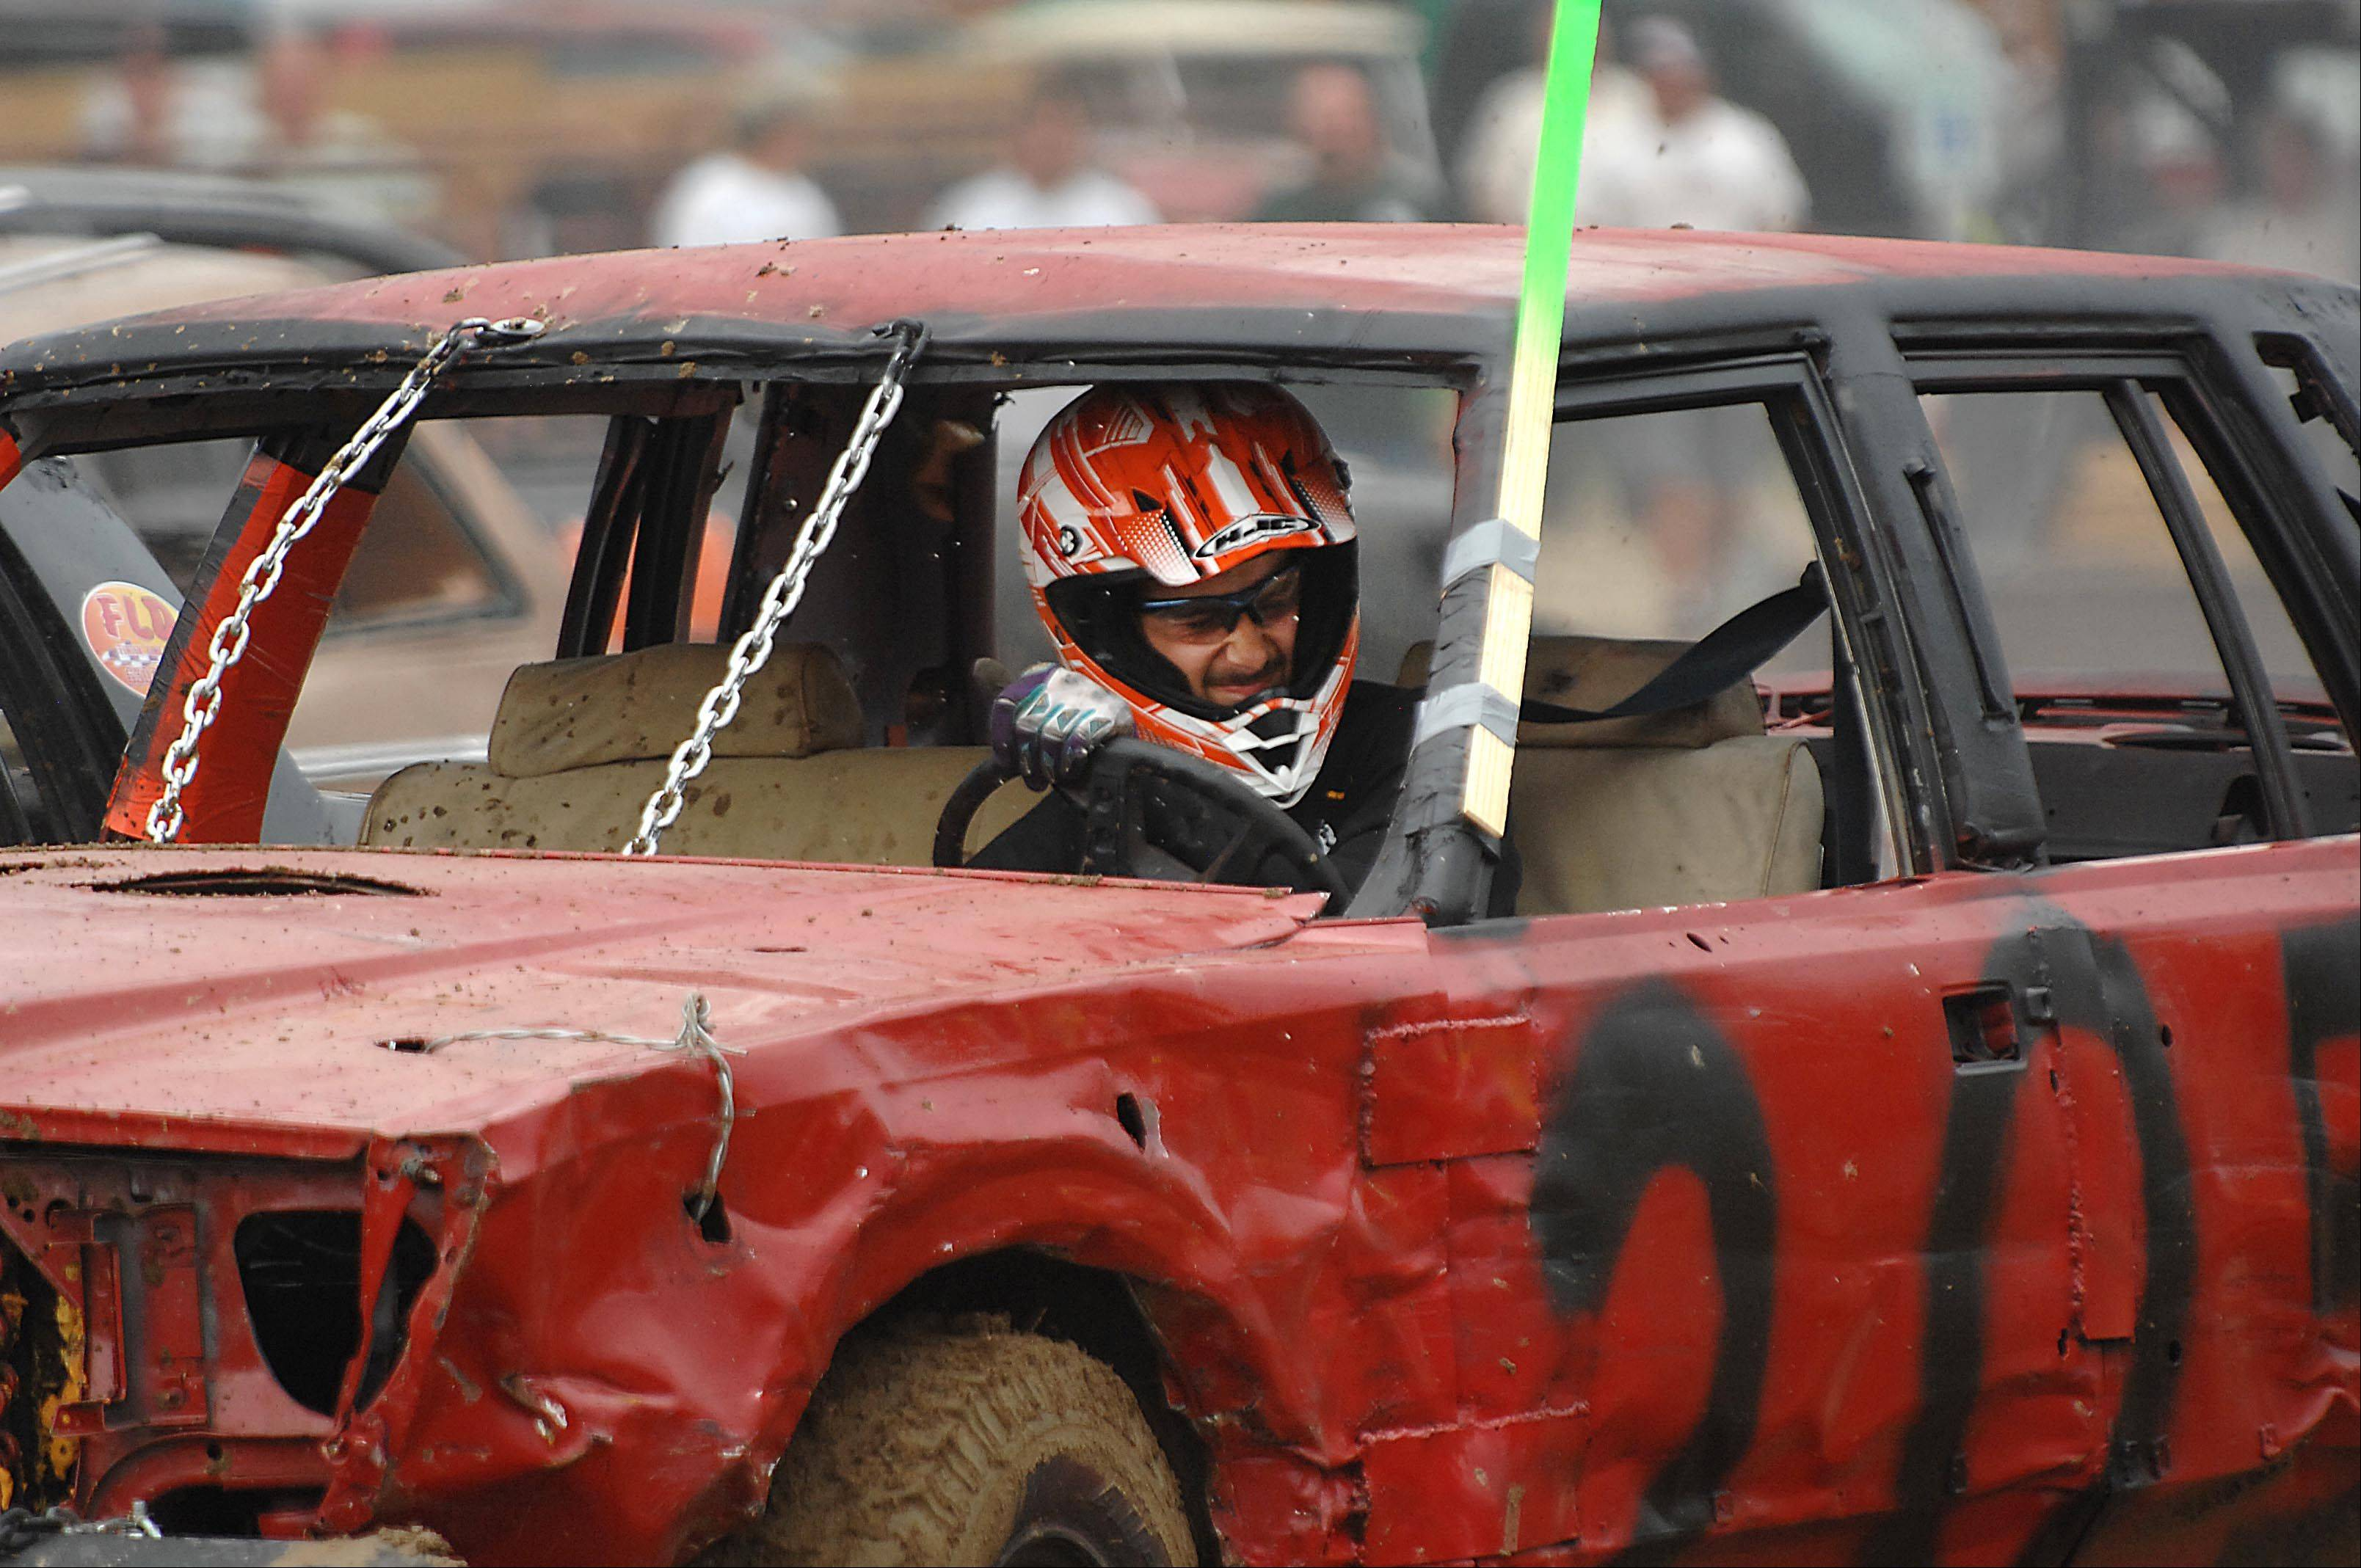 Sam Barris of Lake Zurich grimaces as he is hit during the Demolition Derby at the Kane County Fair Sunday in St. Charles.